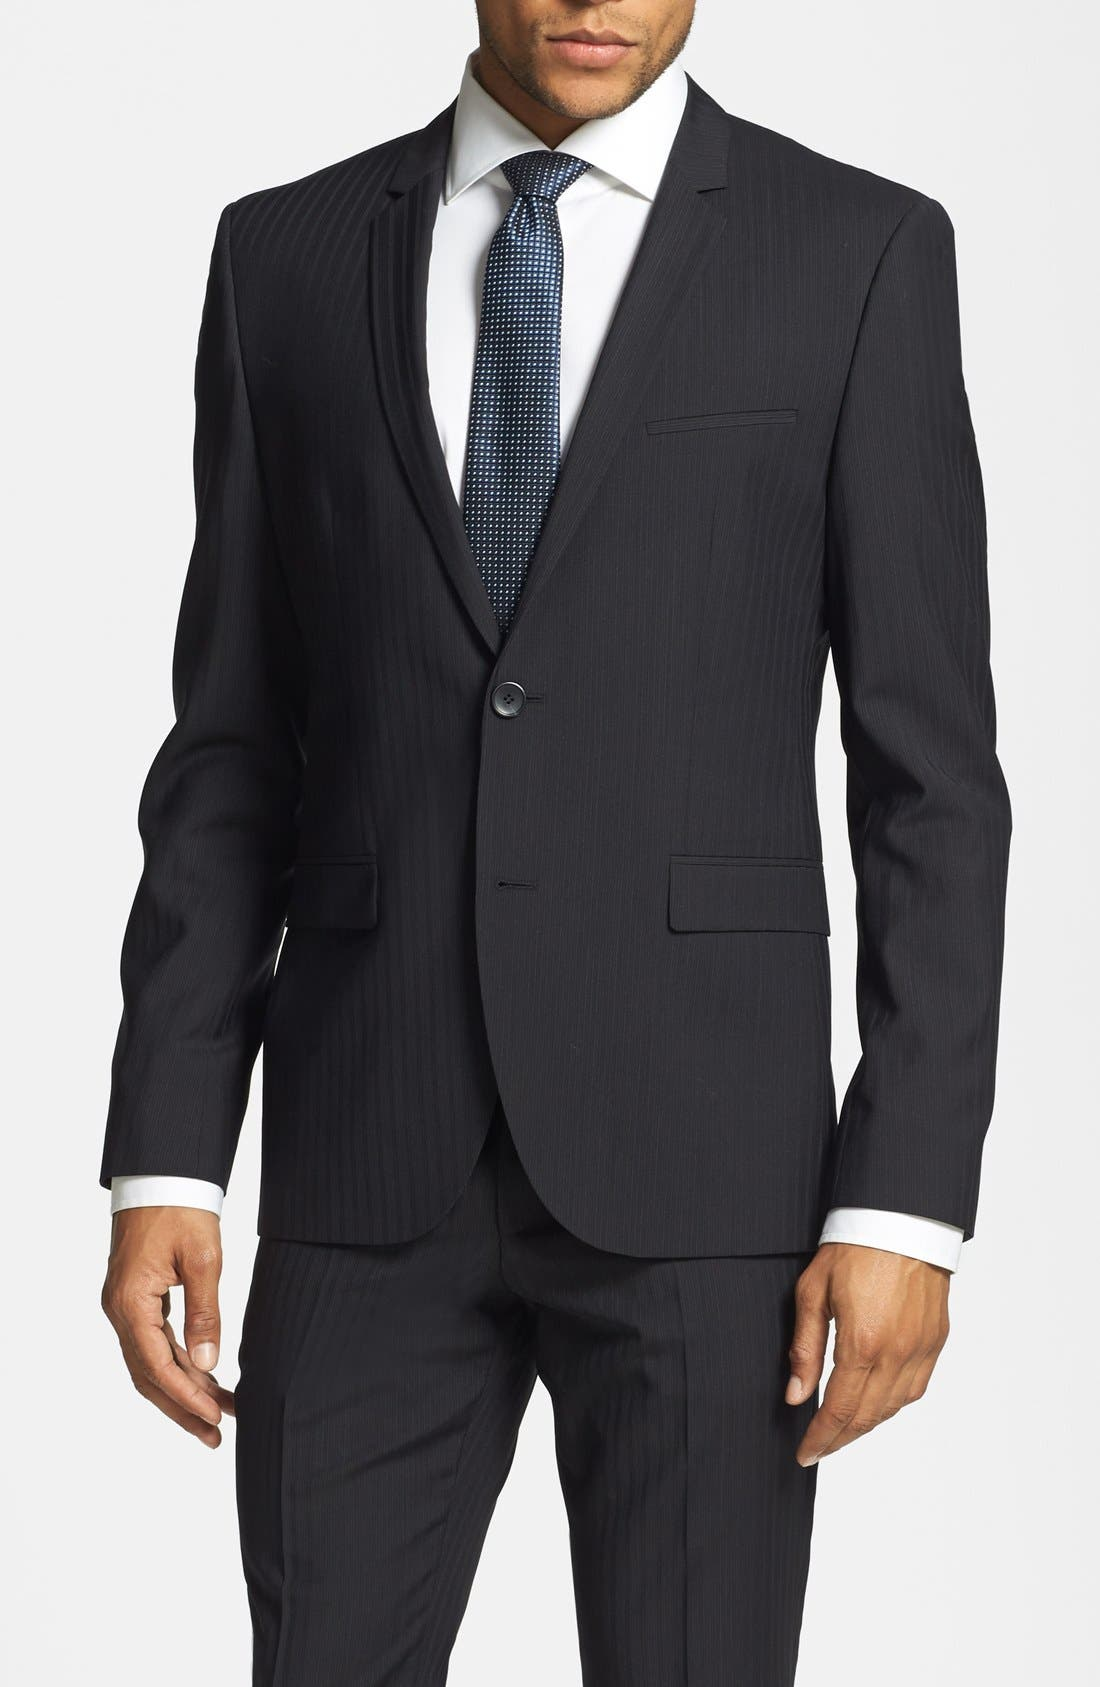 BOSS HUGO BOSS 'Adris/Heibo' Extra Trim Fit Stripe Suit,                             Alternate thumbnail 3, color,                             001